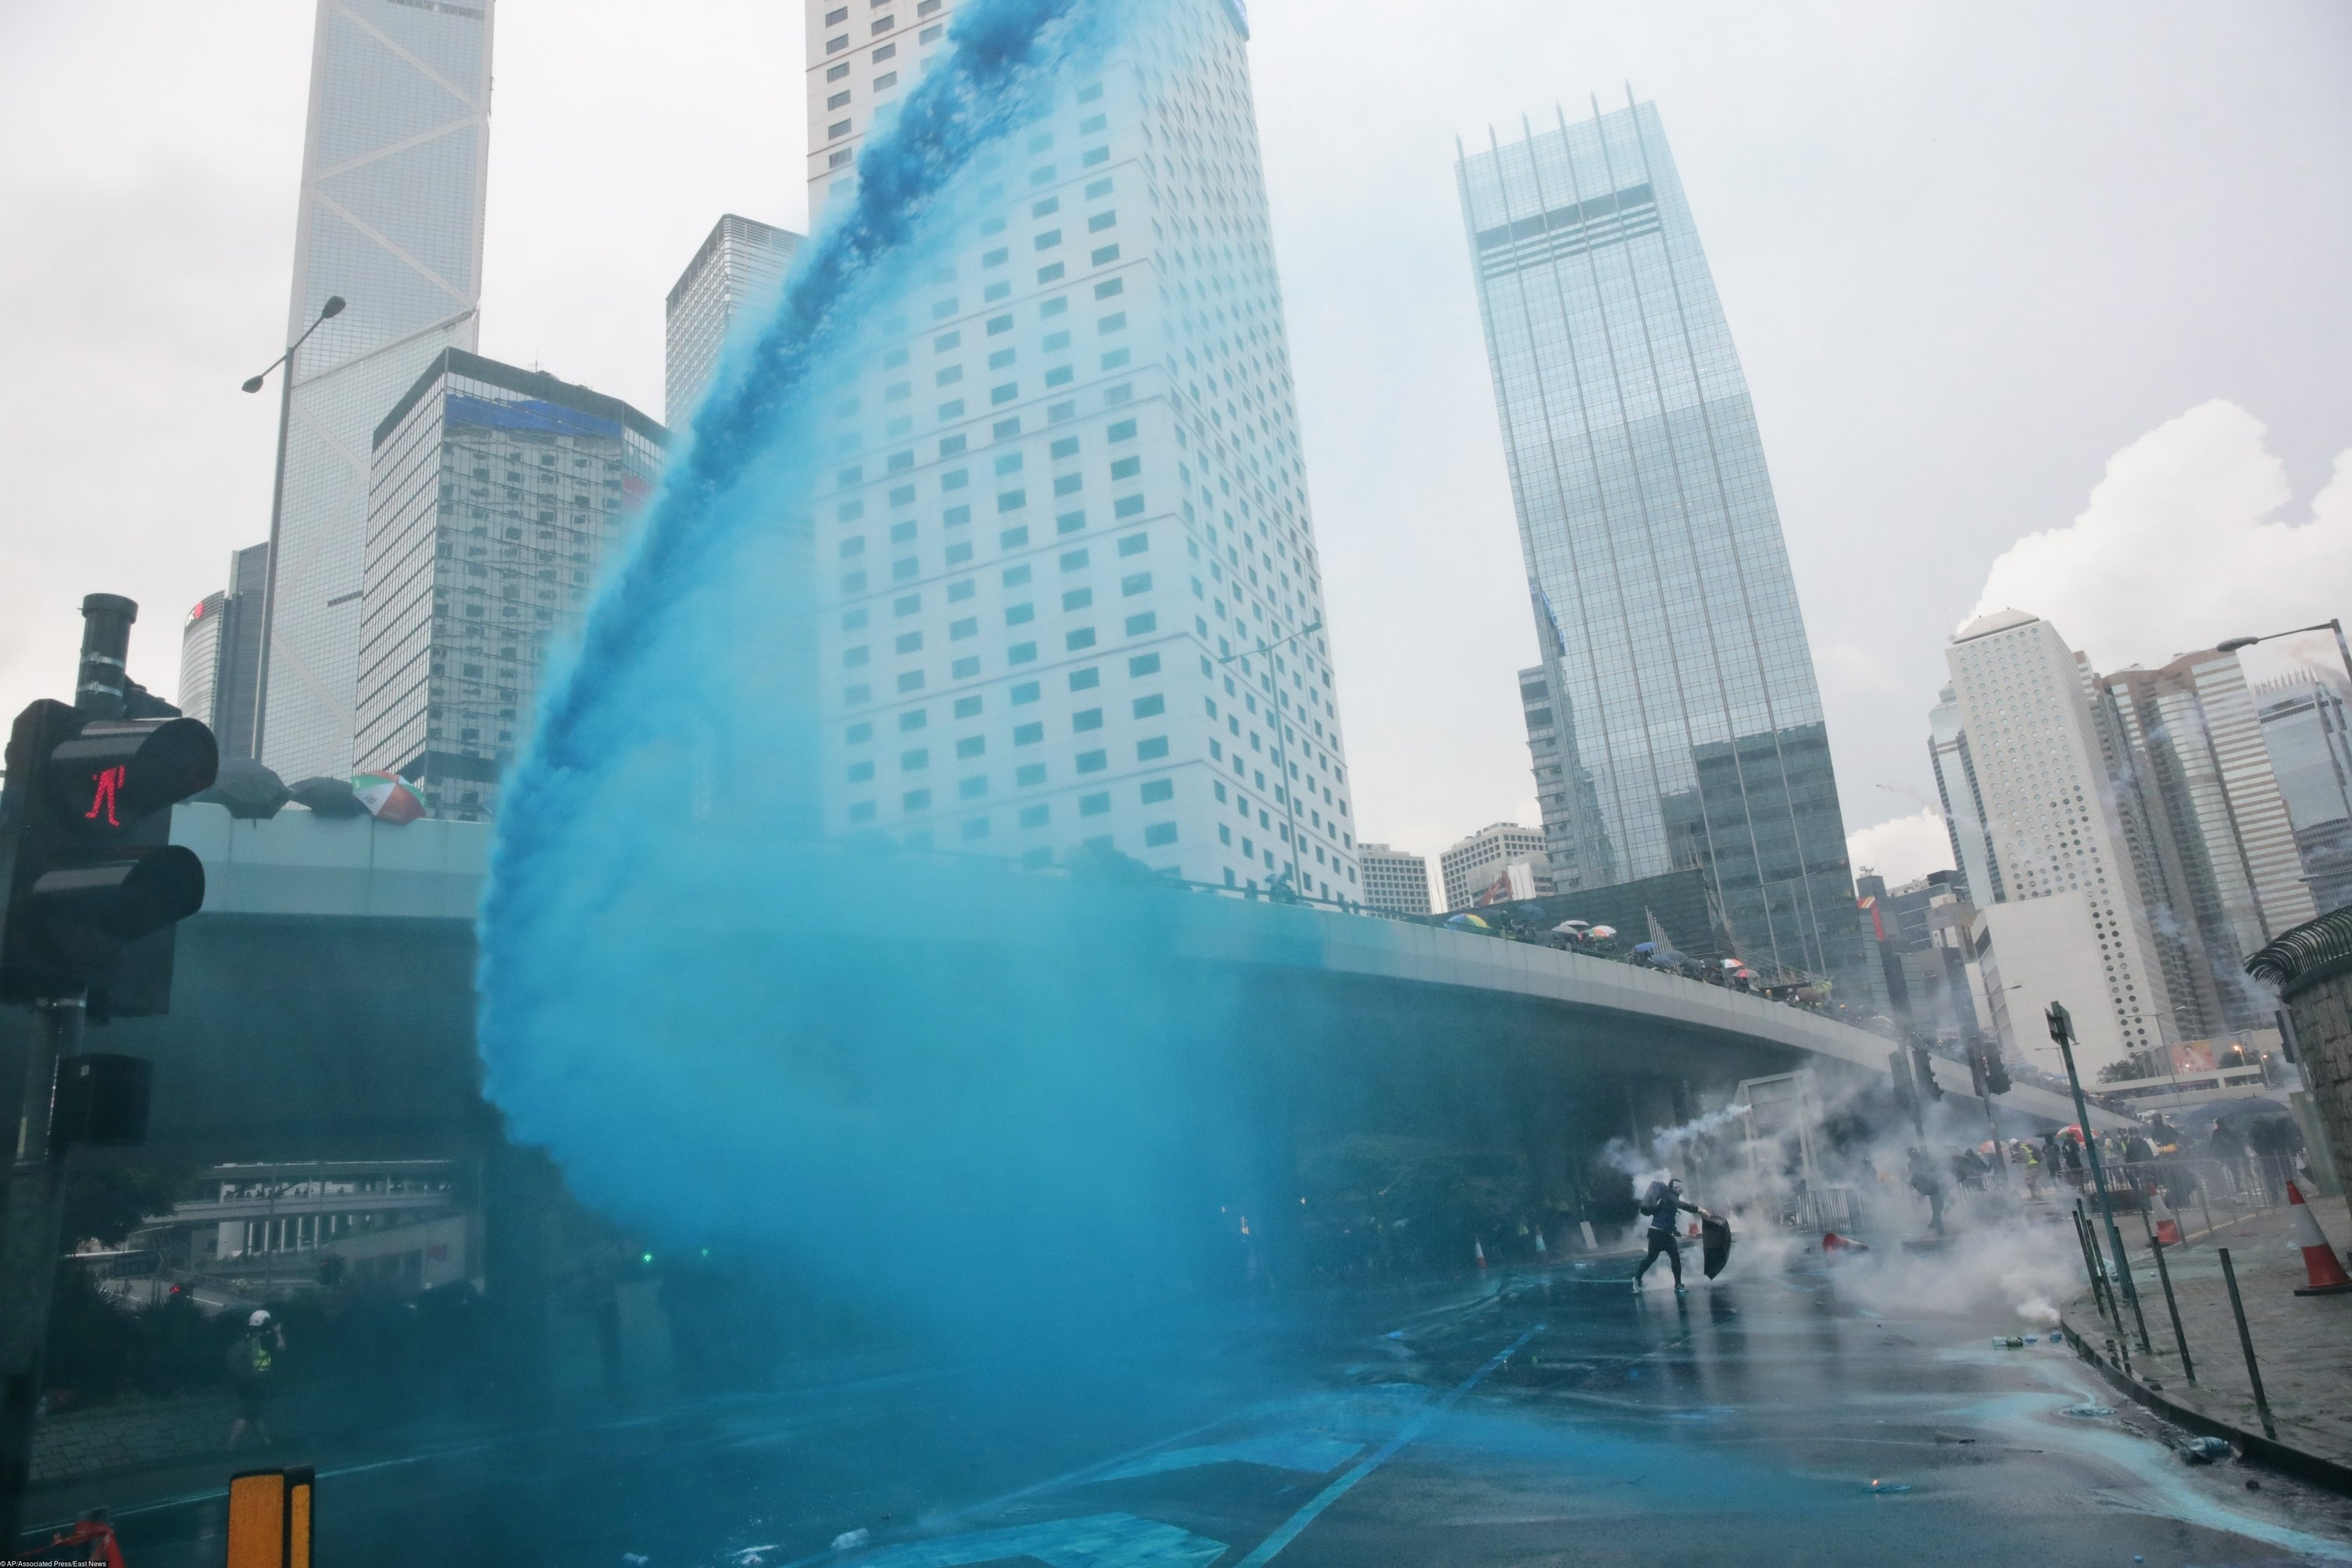 A protestor throws back an exploded tear gas shell, as police fire blue-colored water from water cannons in central Hong Kong, Saturday, Aug. 31, 2019. While other protesters marched back and forth elsewhere in the city, a large crowd wearing helmets and gas masks gathered outside the city government building. Some approached barriers that had been set up to keep protesters away and appeared to throw objects at the police on the other side. Others shone laser lights at the officers.